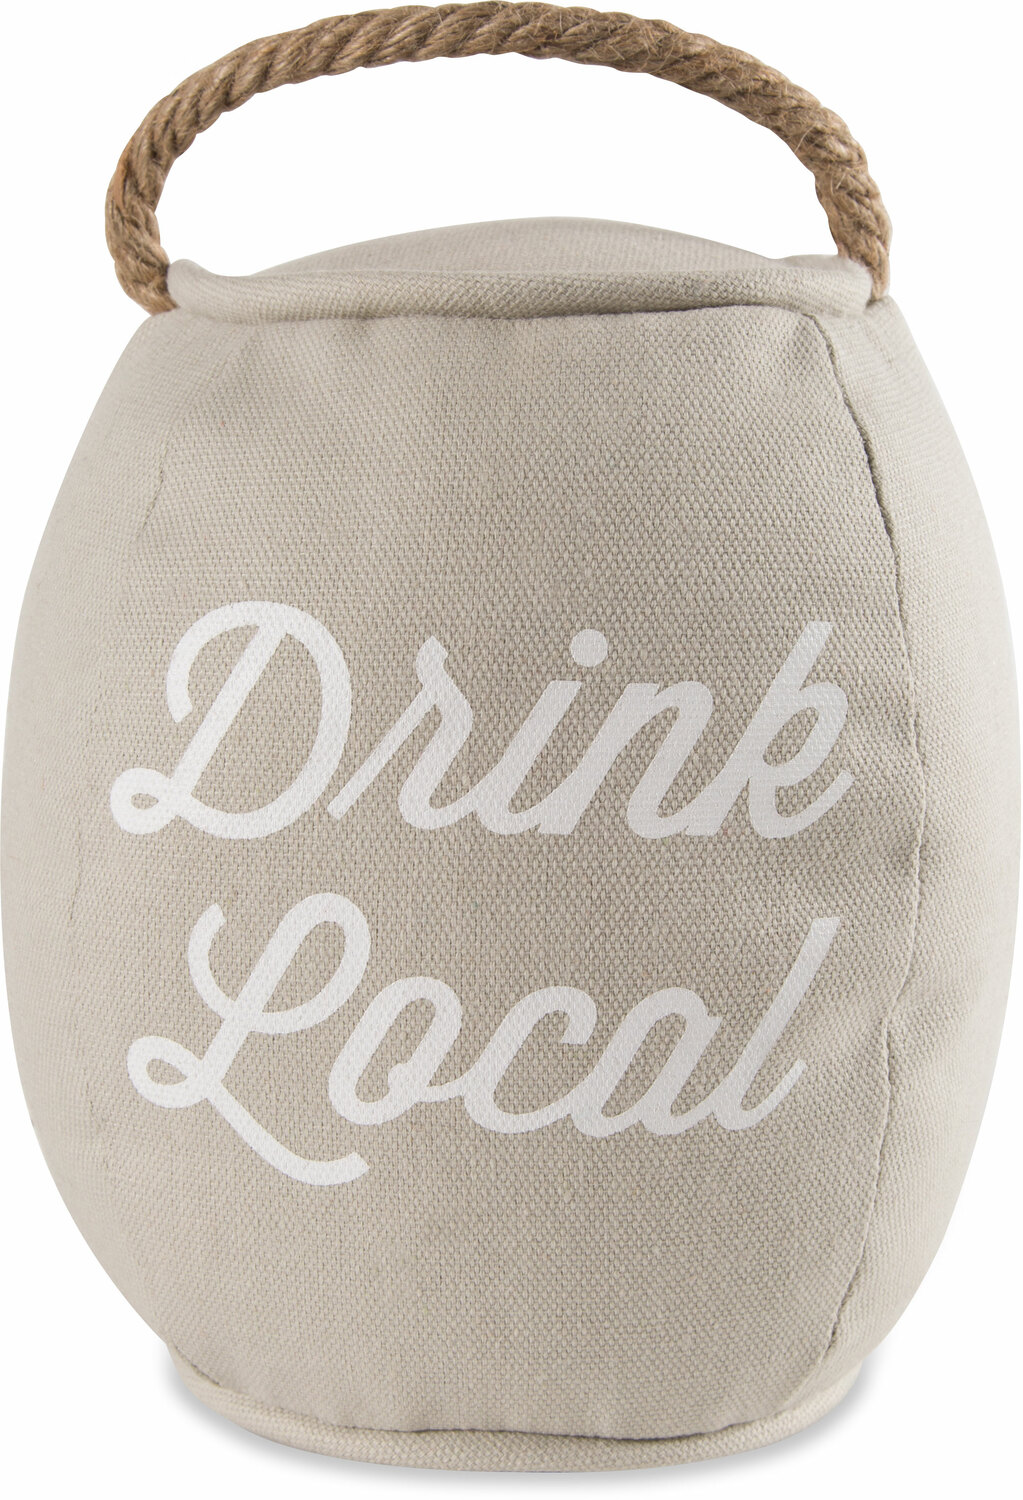 "Drink Local by Man Crafted - Drink Local - 8"" Barrel Door Stopper"